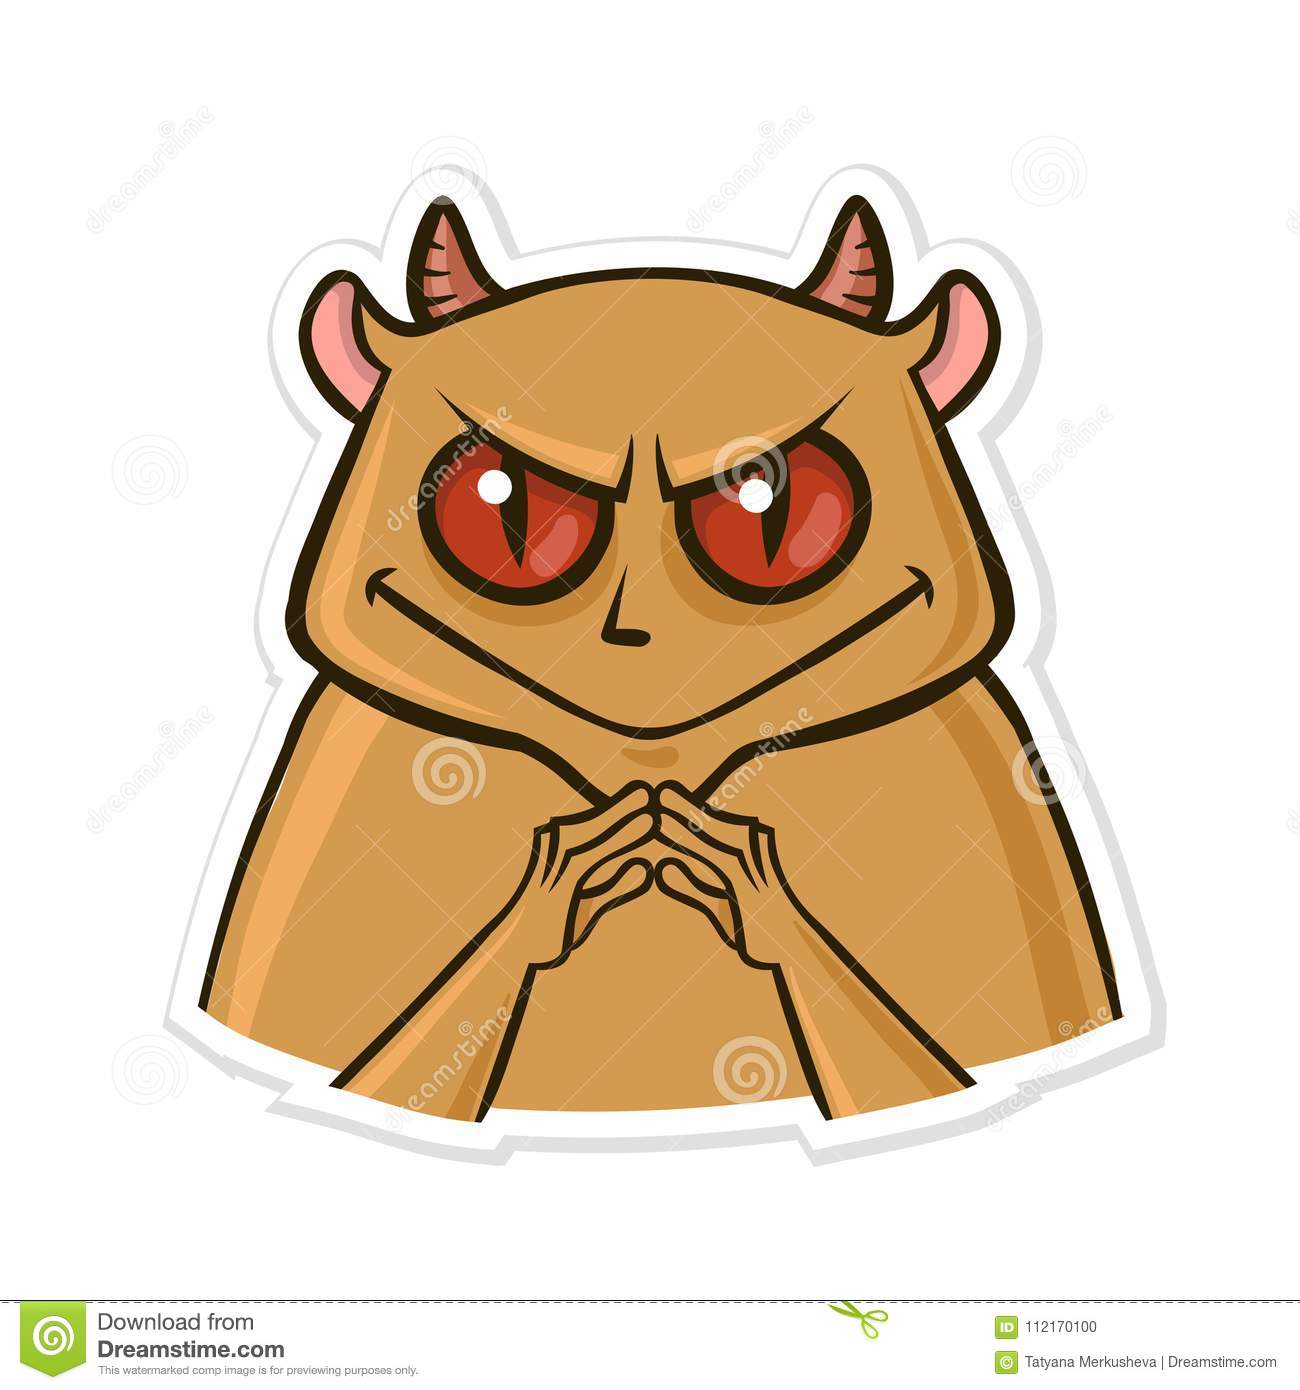 Sticker for messenger with funny animal. Devil hamster is up to something. Vector illustration isolated on white